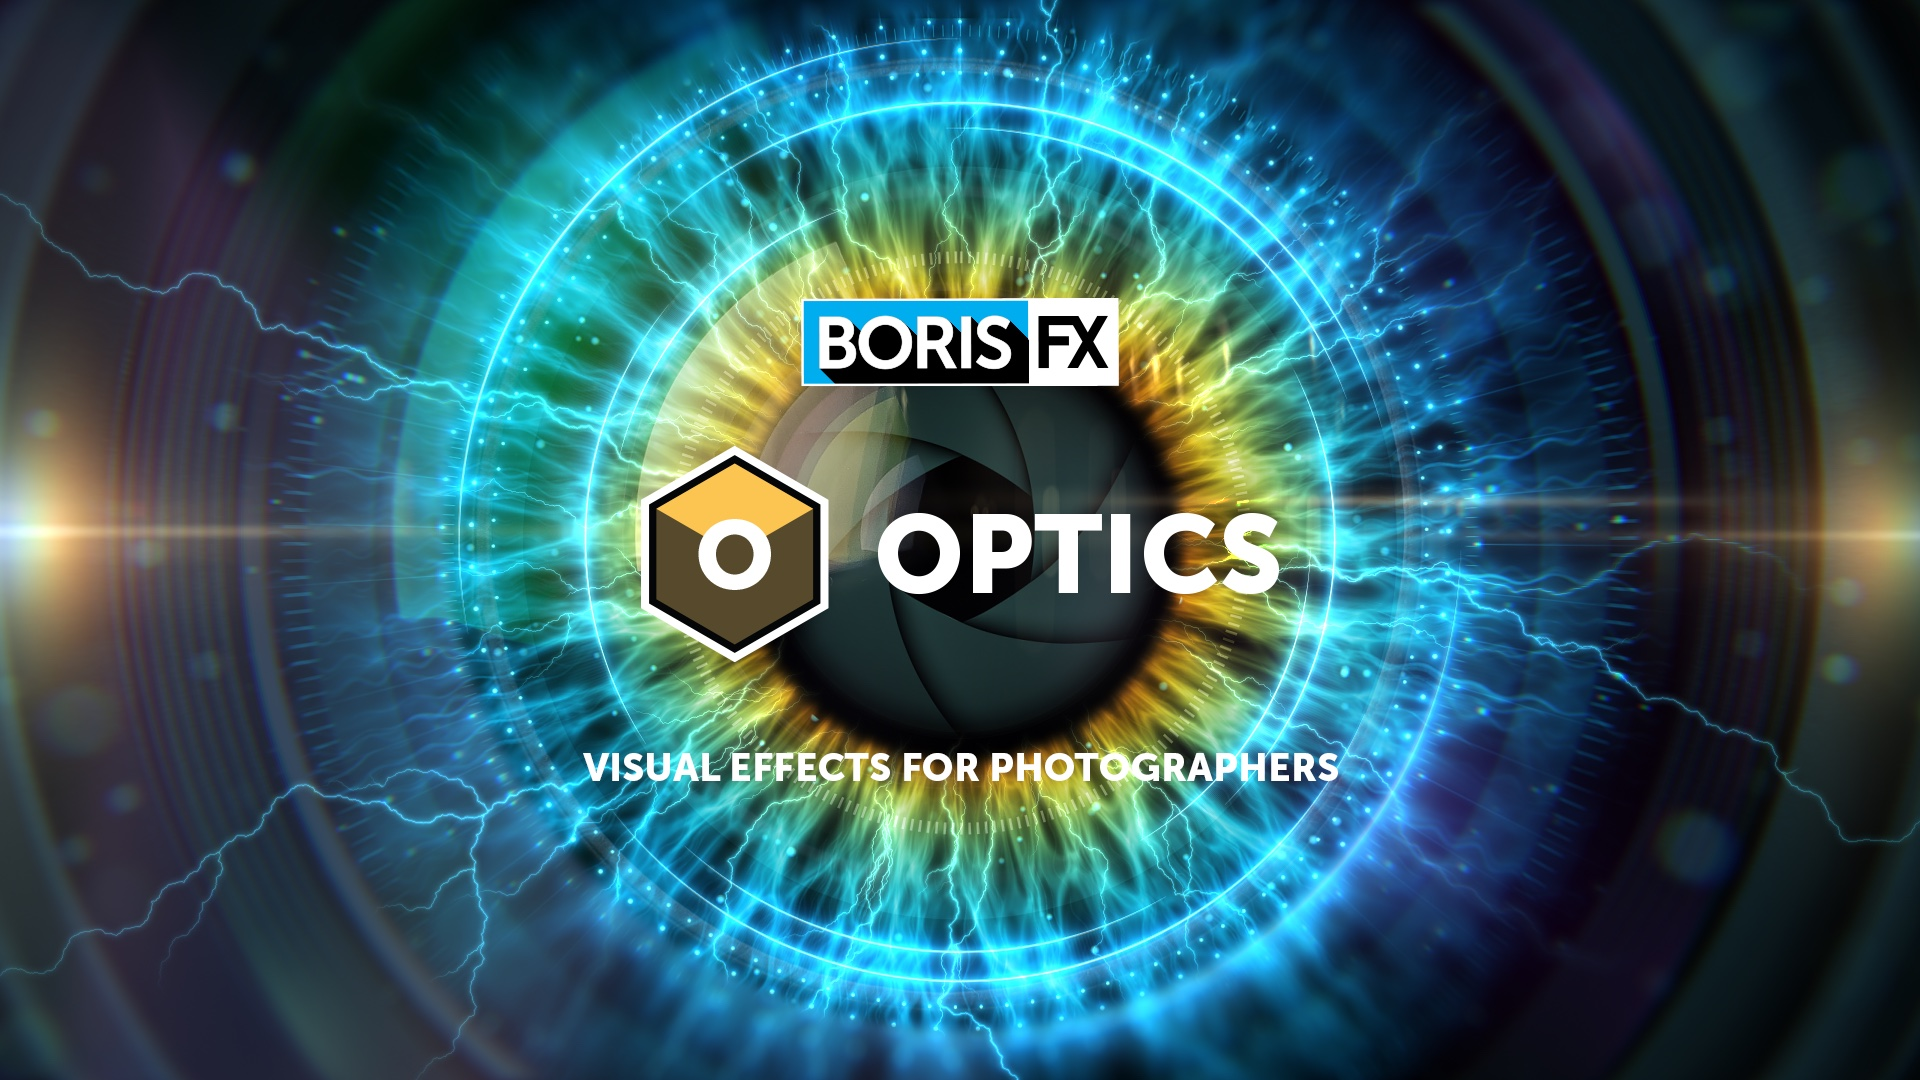 Boris FC Optics